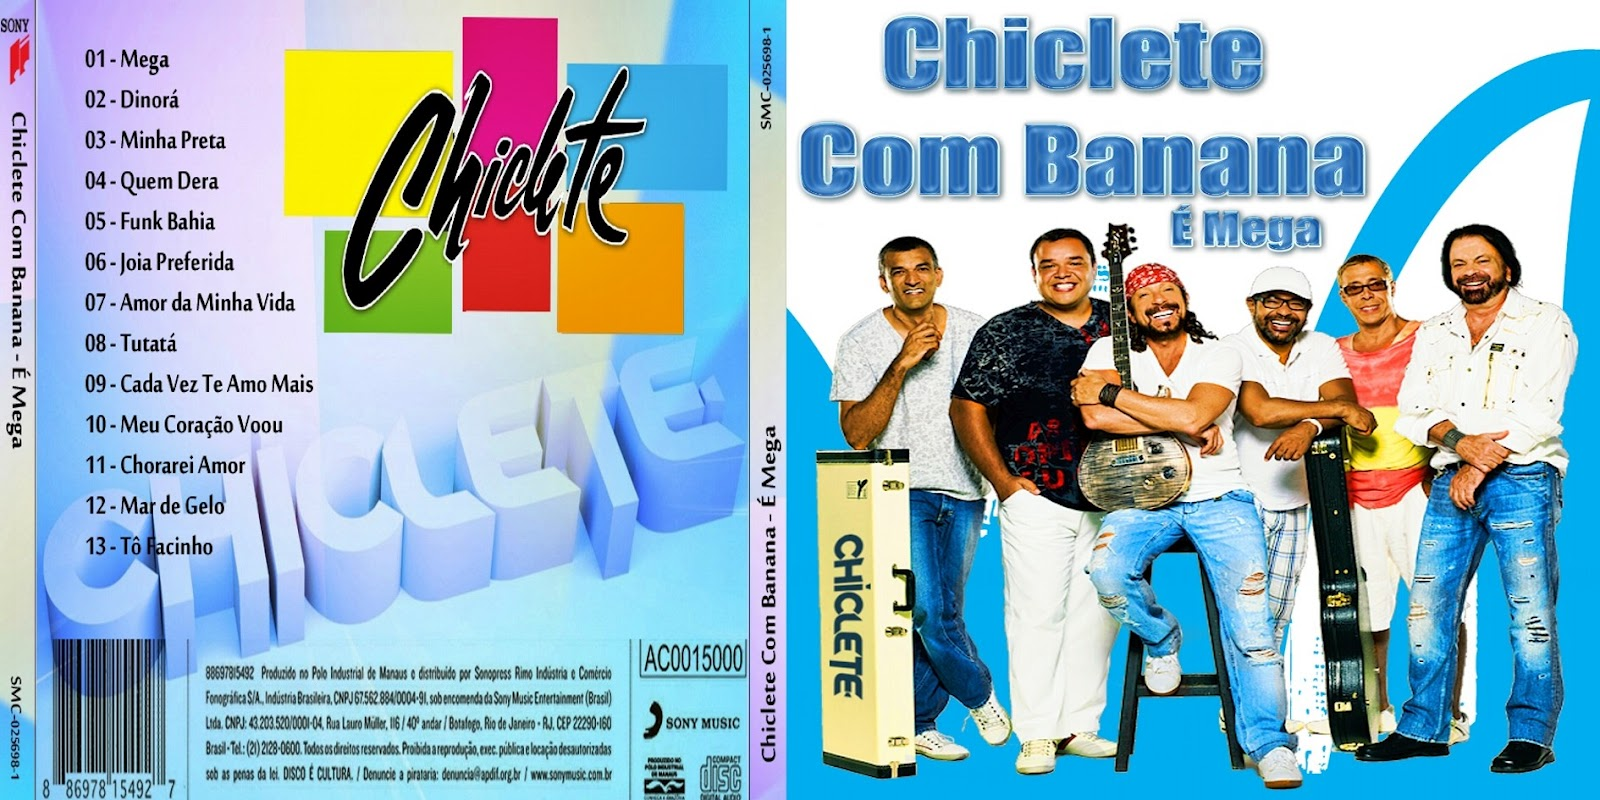 novo cd de chiclete com banana 2012